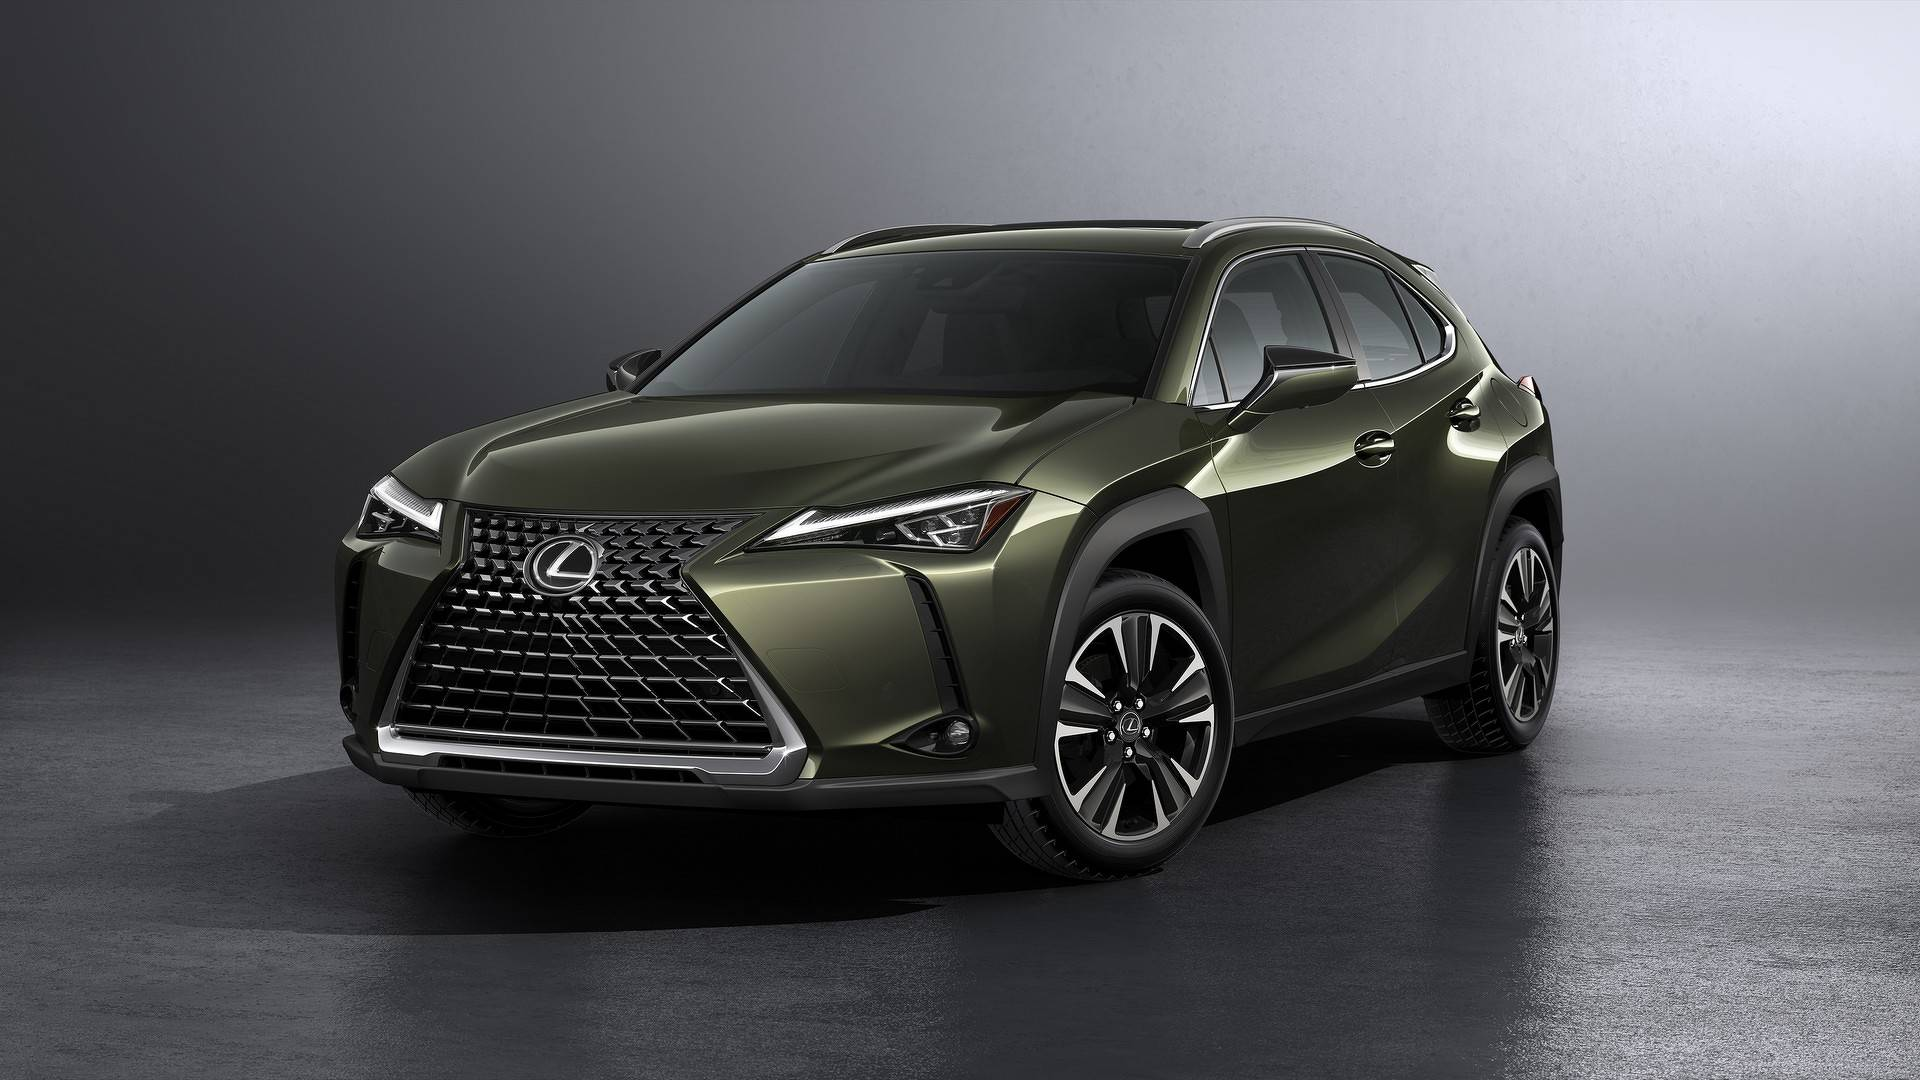 2019 lexus ux officially revealed ahead of geneva debut an urban compact. Black Bedroom Furniture Sets. Home Design Ideas